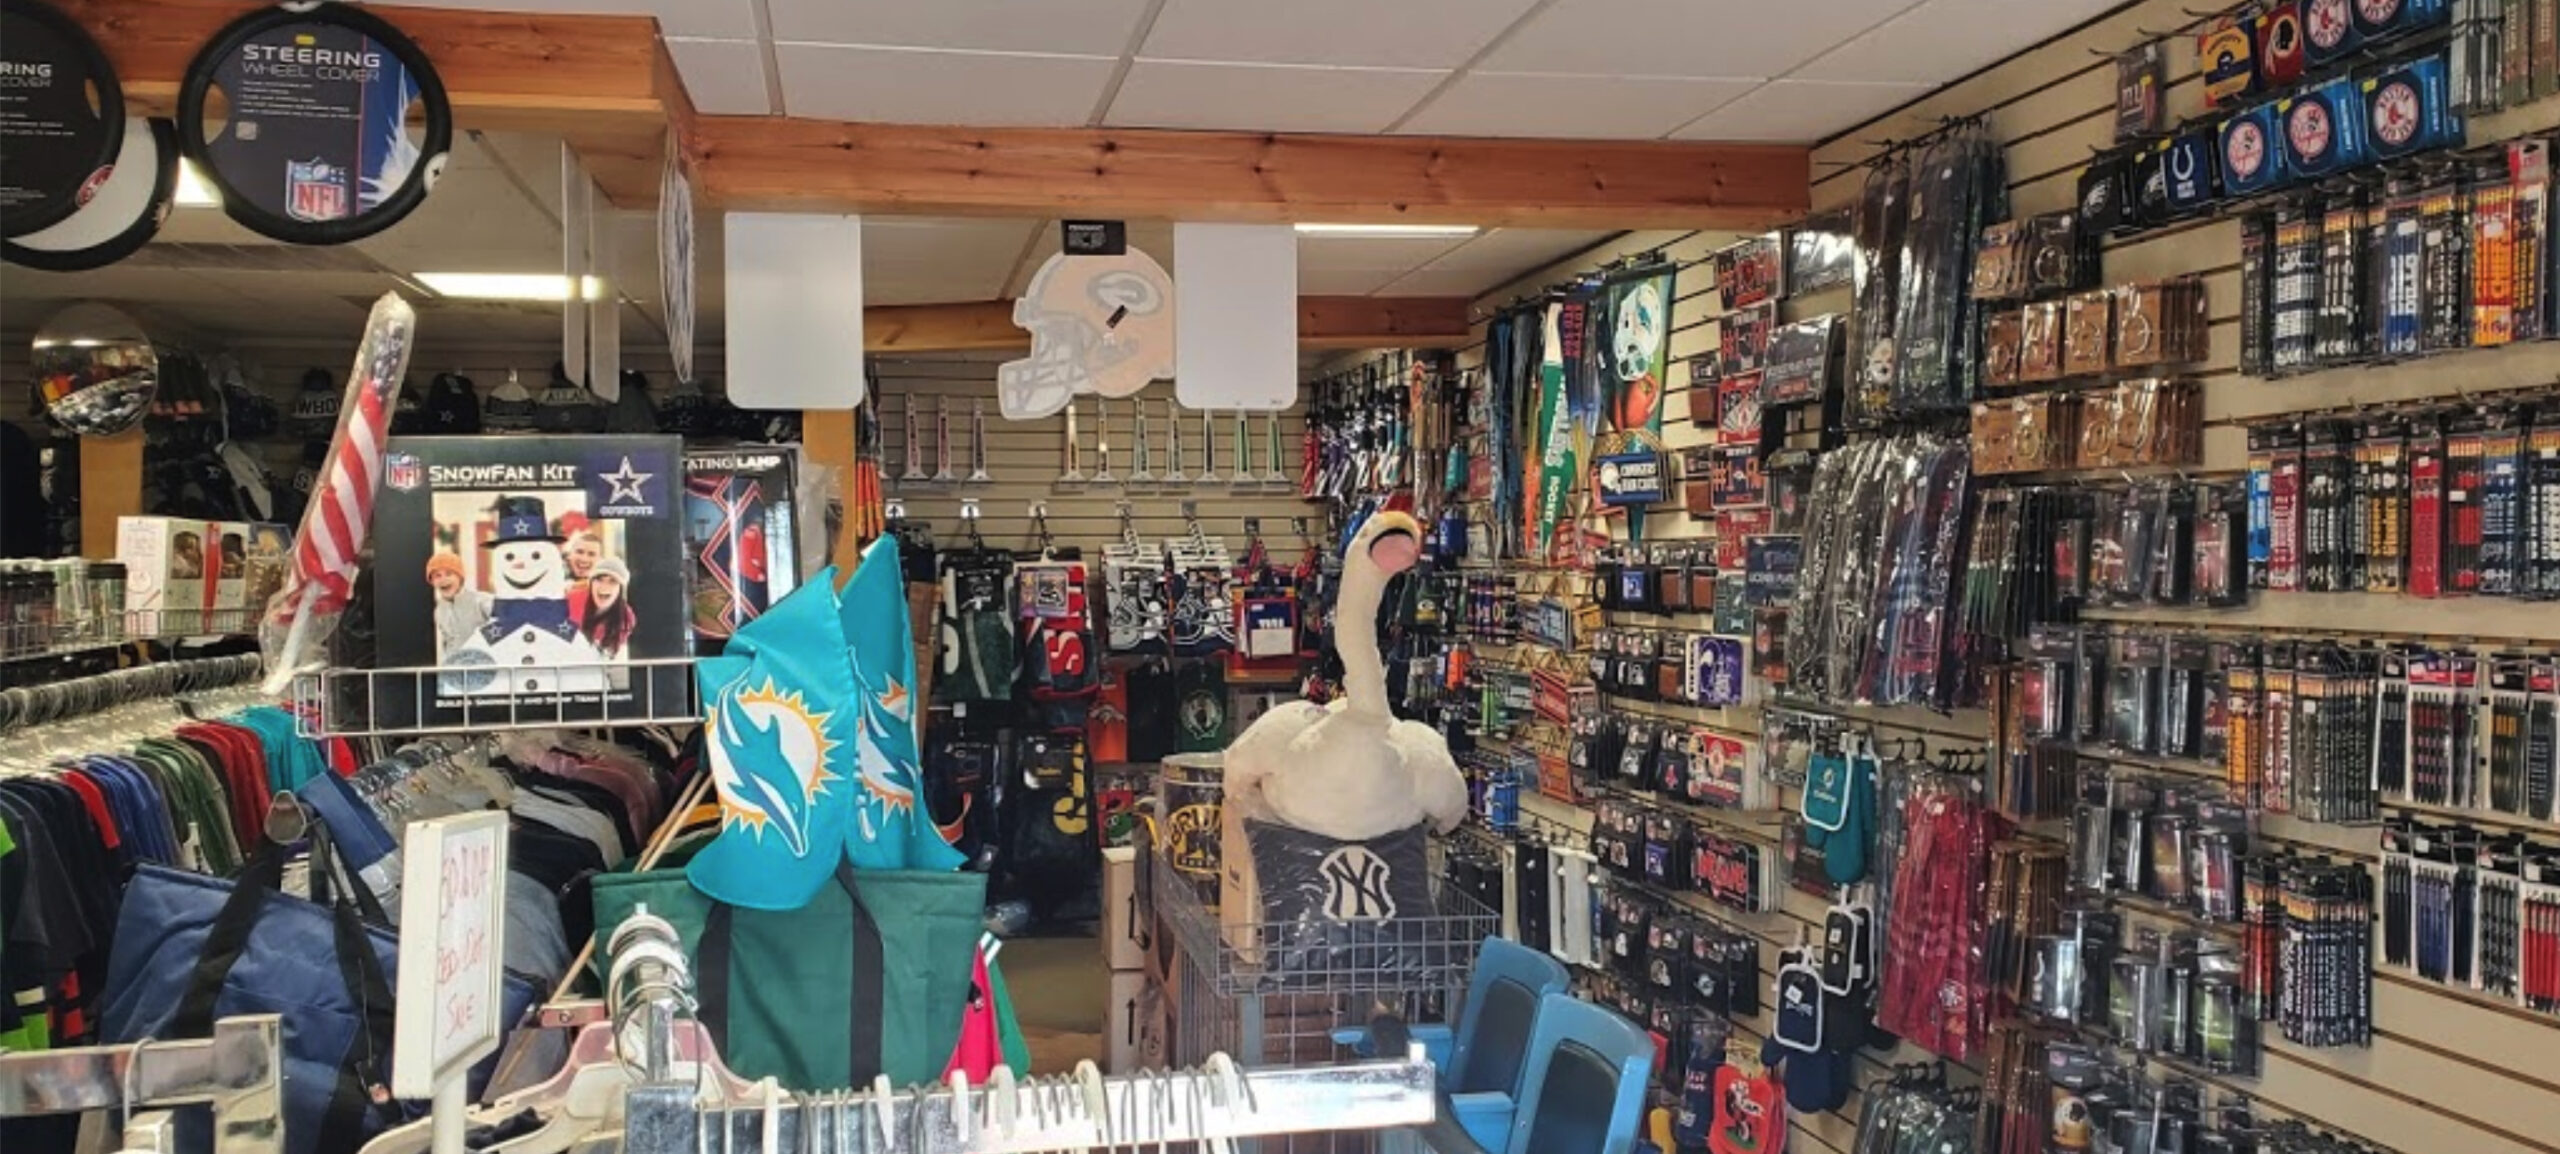 C&S Sports and Hobby Store